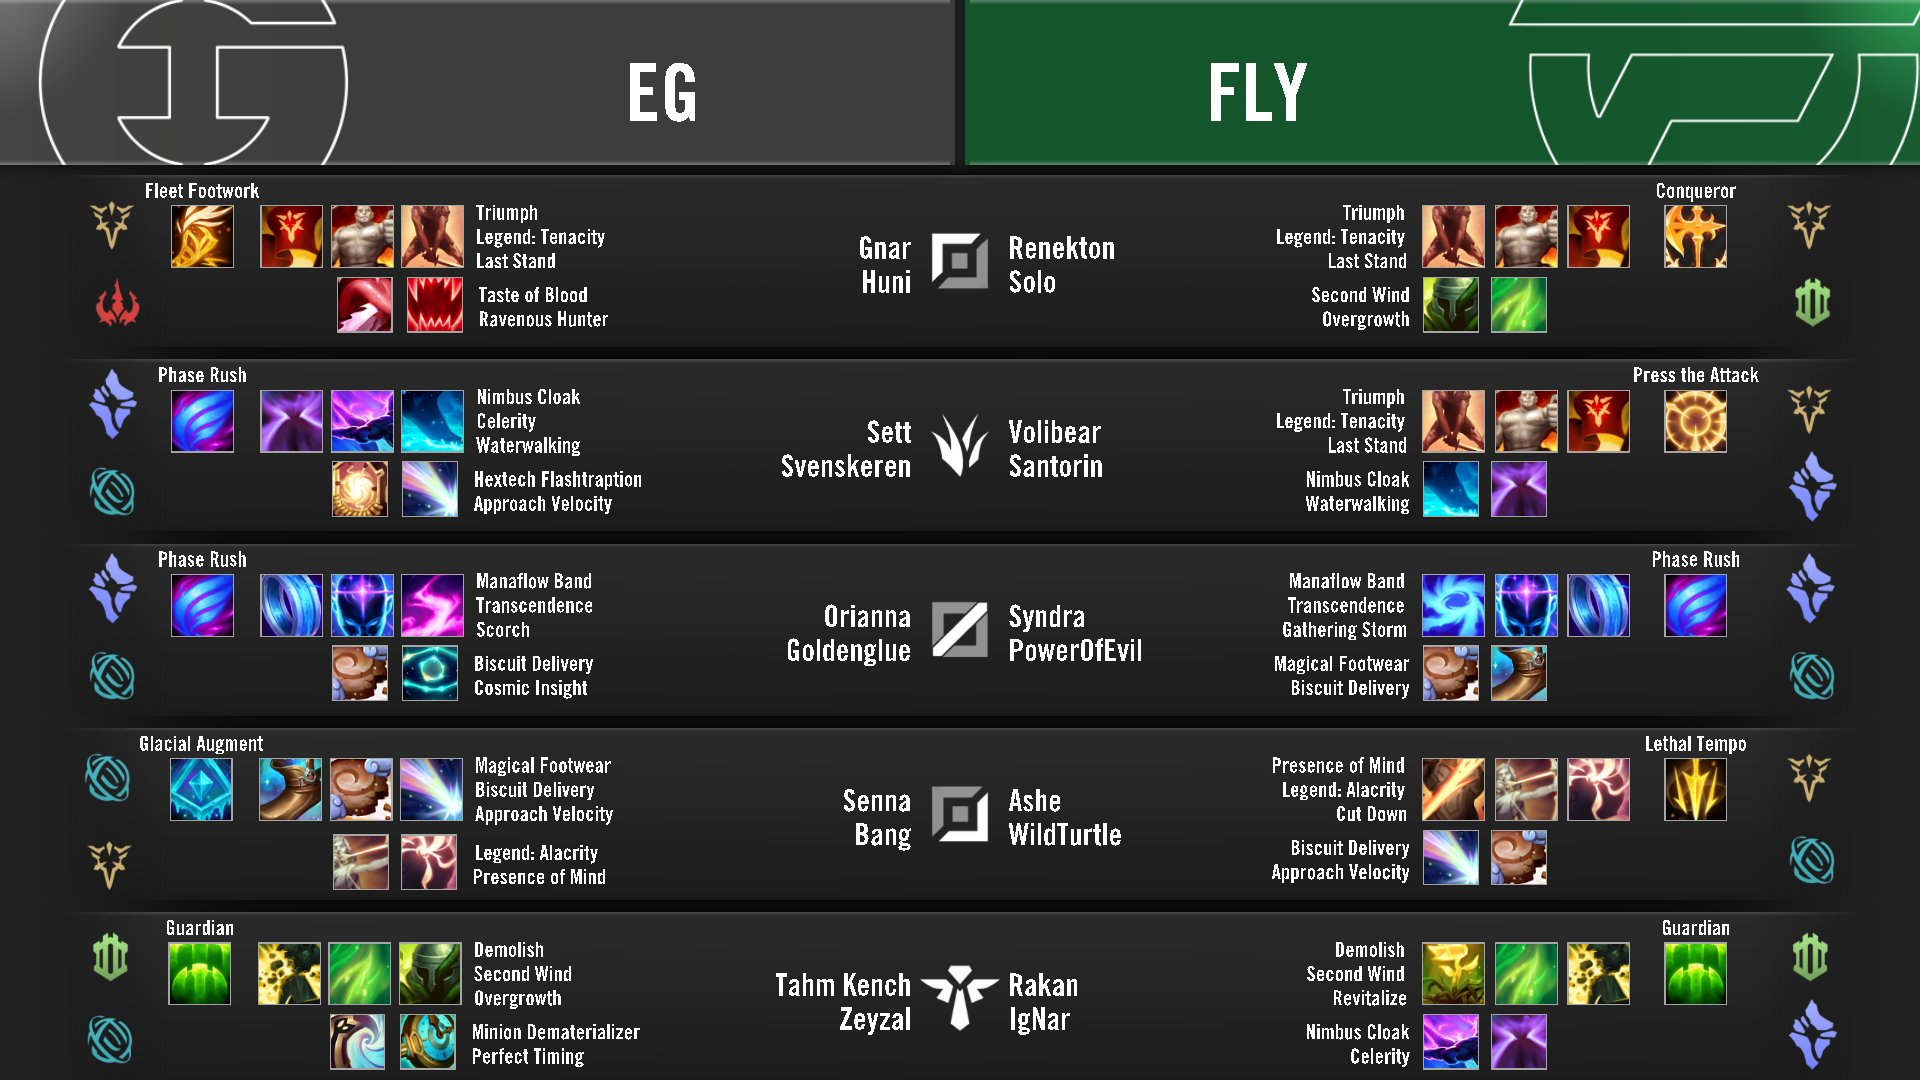 EfadsSKVAAA2IMT?format=jpg&name=large - FlyQuest vs. Evil Geniuses / LCS 2020 Summer Playoffs - Winners Bracket Round 1 / Post-Match Discussion